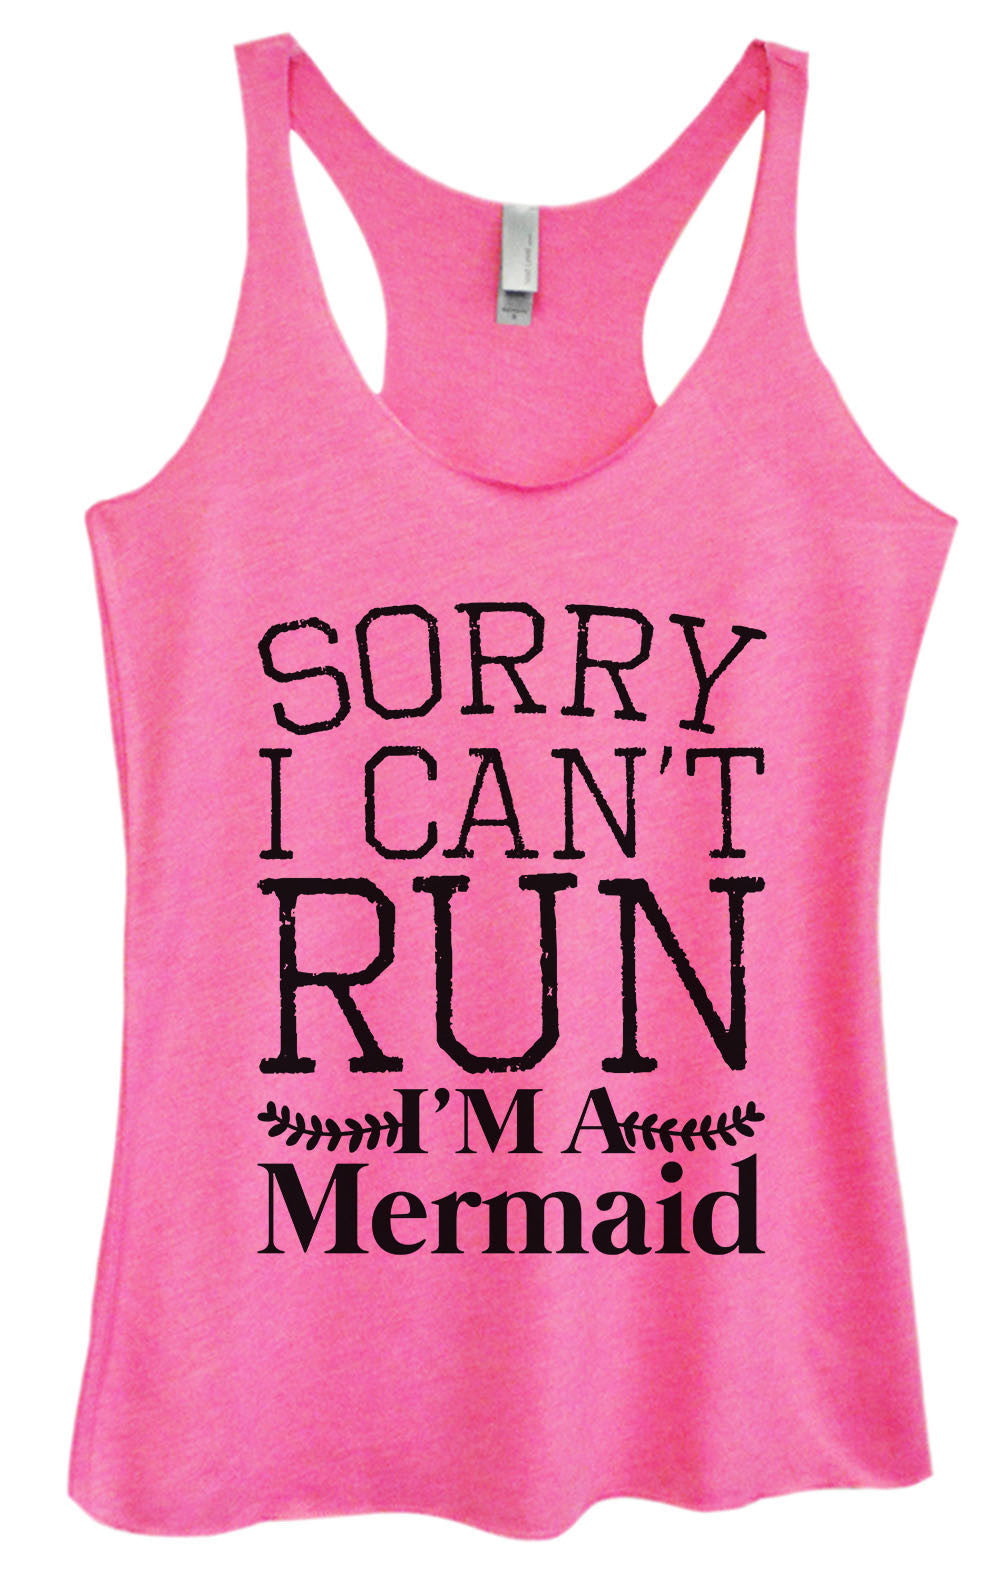 Womens Fashion Triblend Tank Top - Sorry I Can't Run I'm A Mermaid - Tri-1563 - Funny Shirts Tank Tops Burnouts and Triblends  - 3